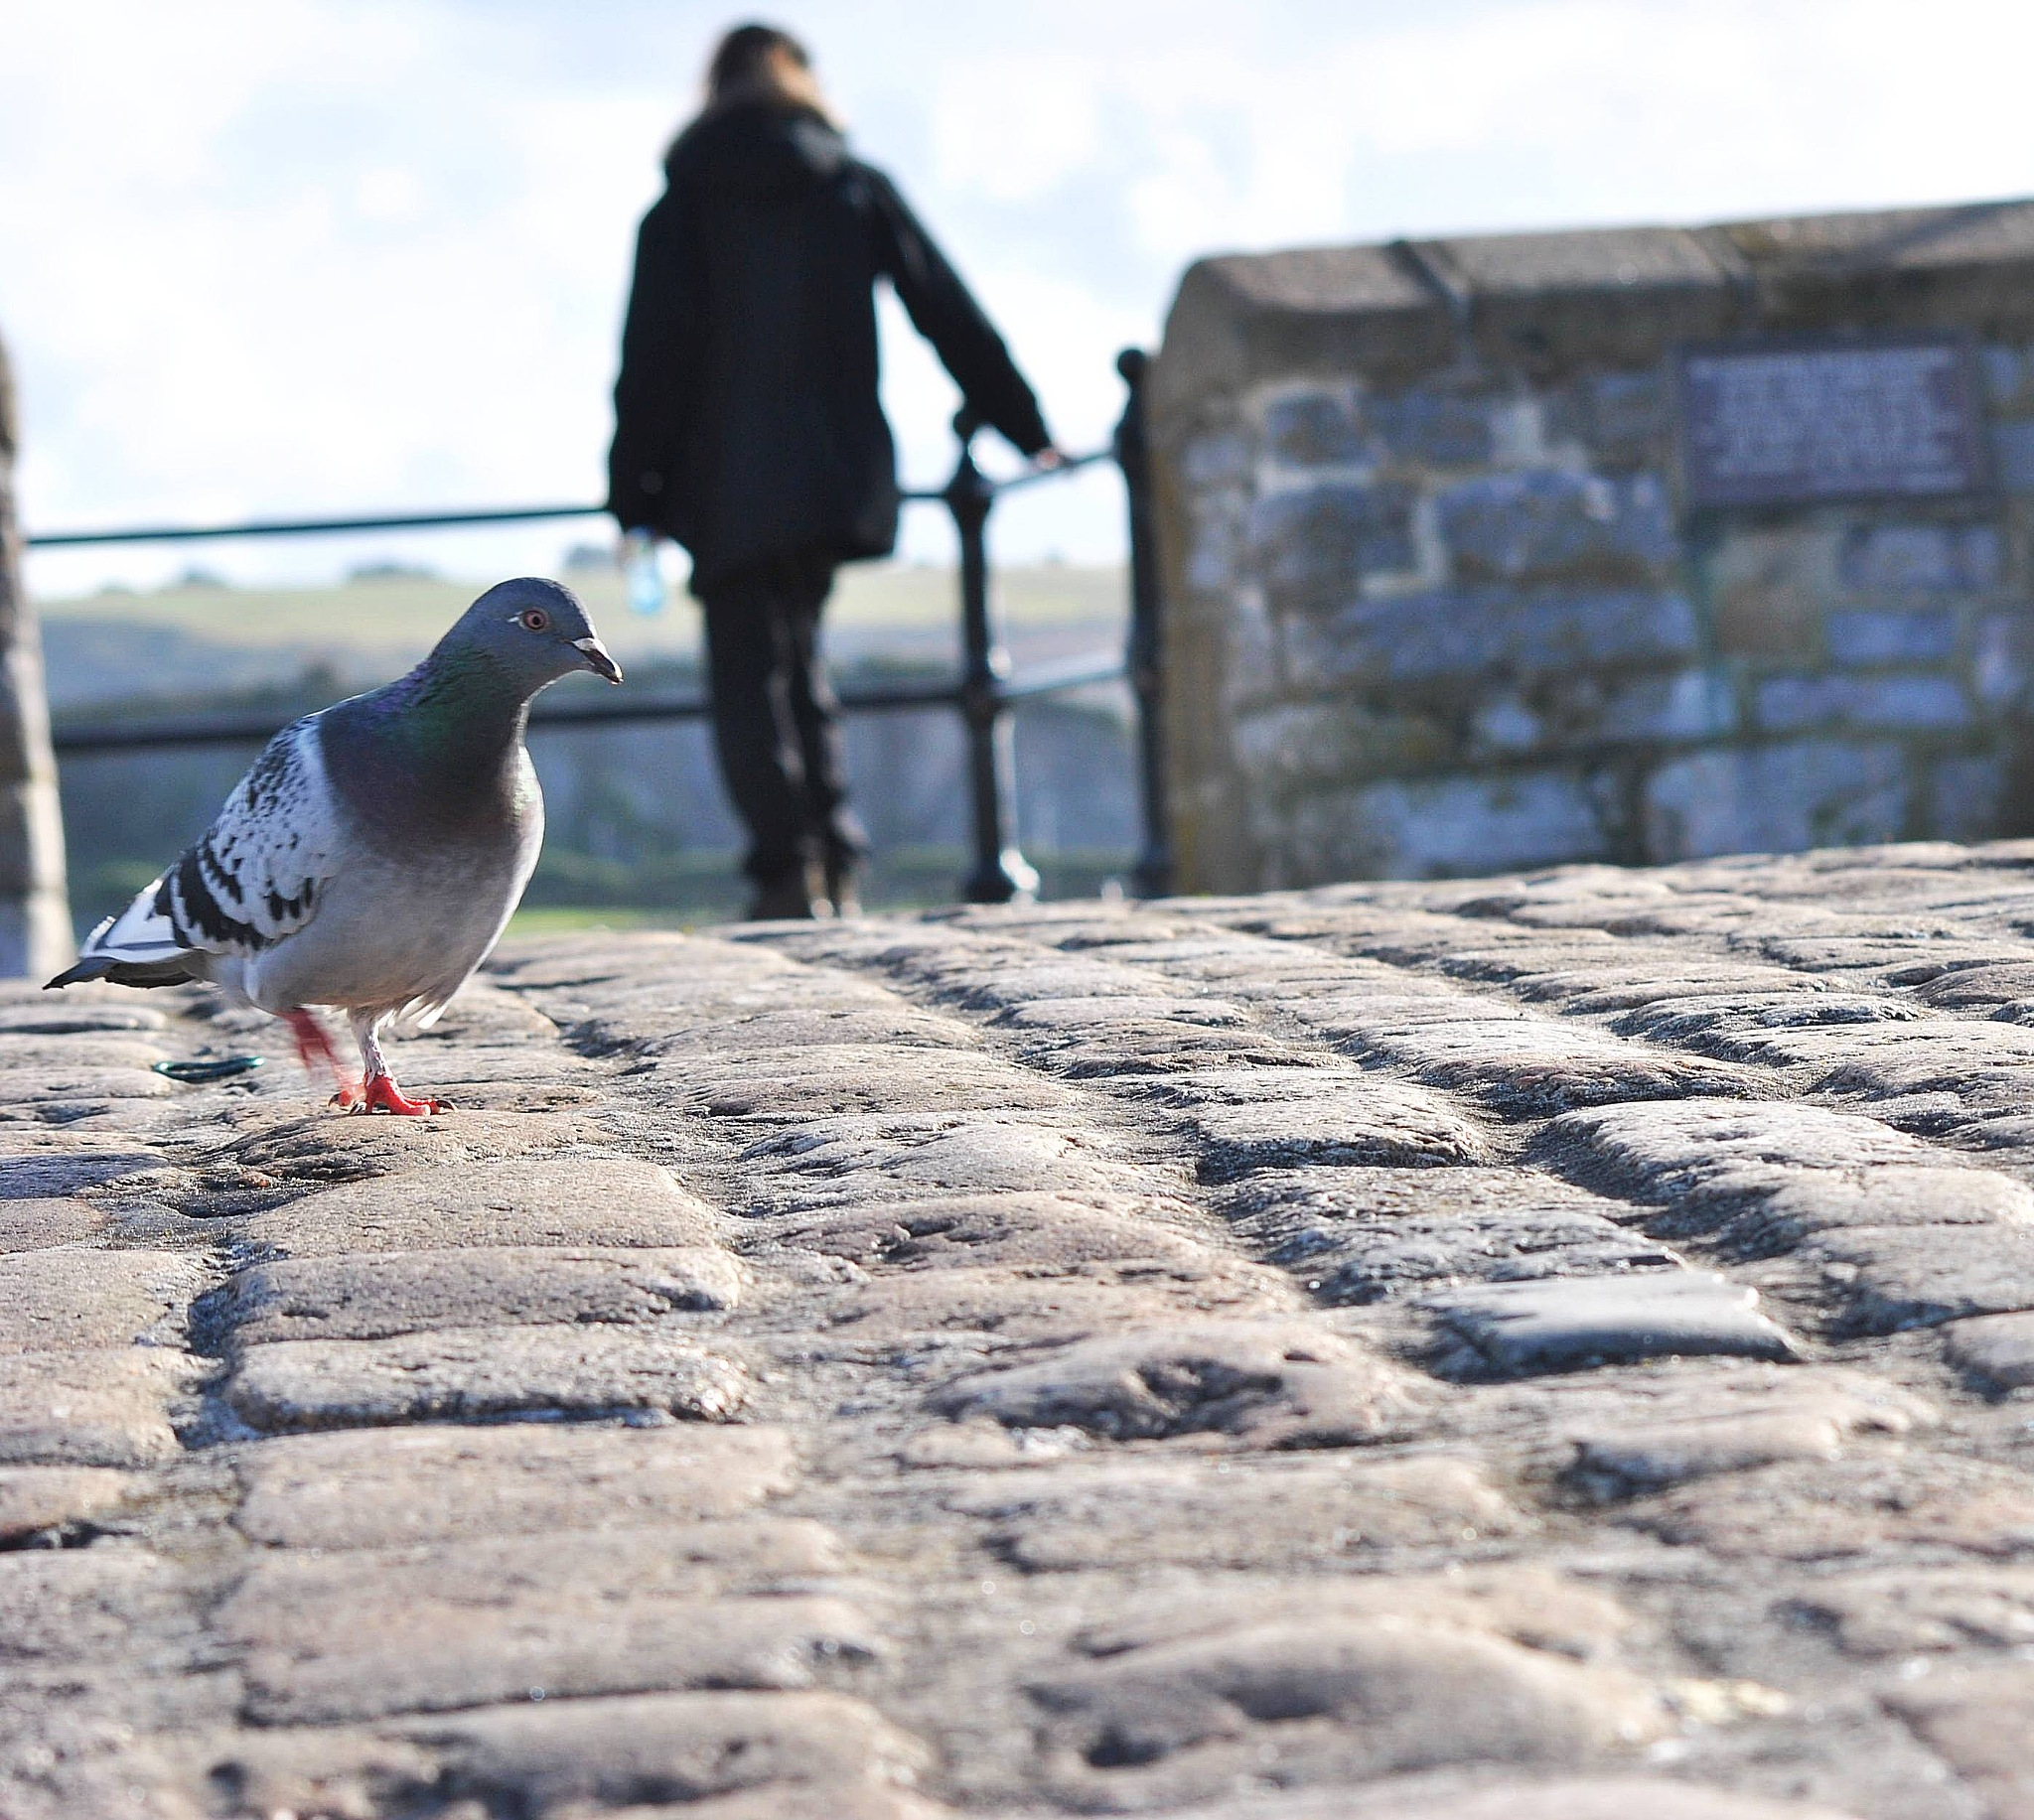 Interested Pigeon by Kyle Anderson